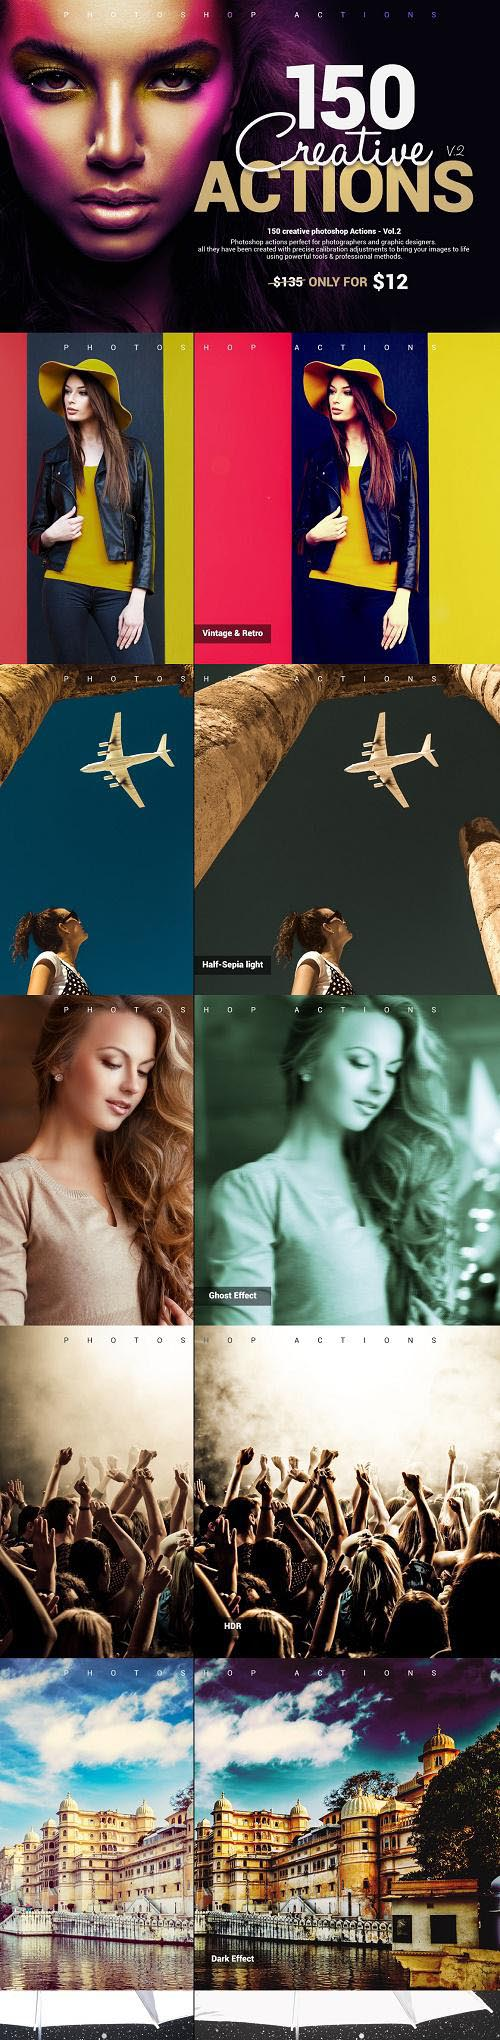 150 Creative Actions V.2 - 2526464